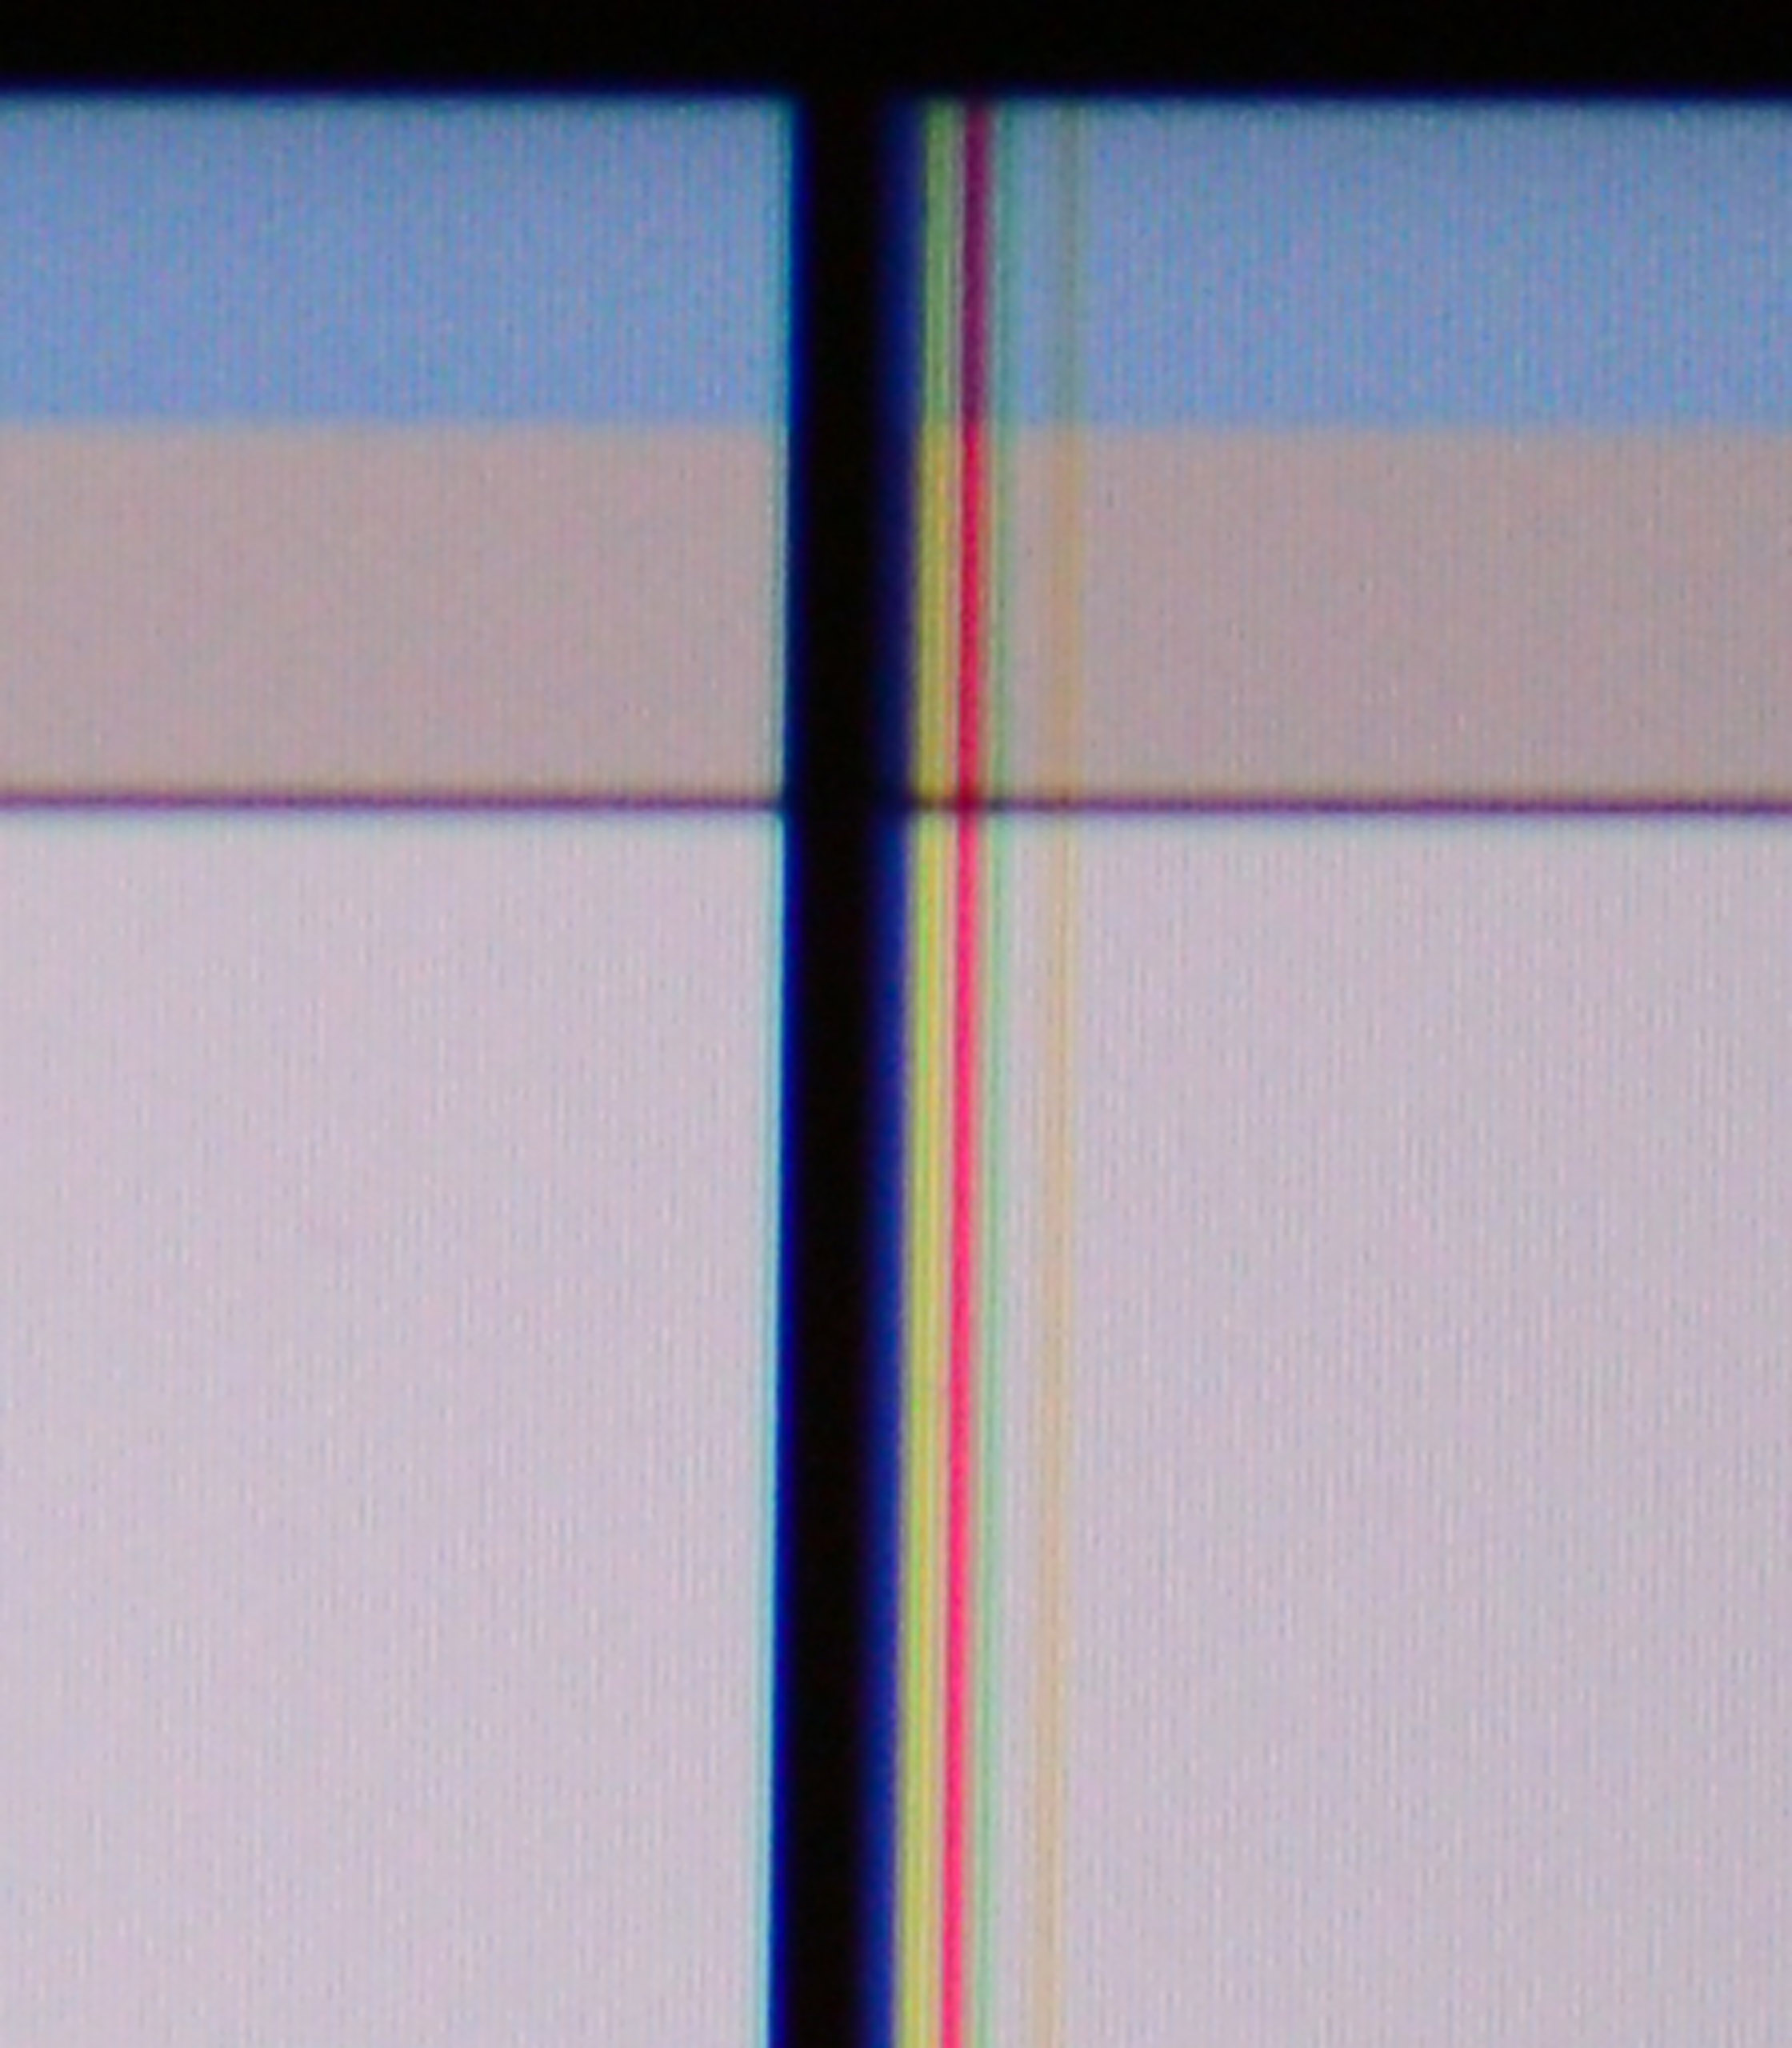 Vertical Lines on Monitor When Monitor is Cool